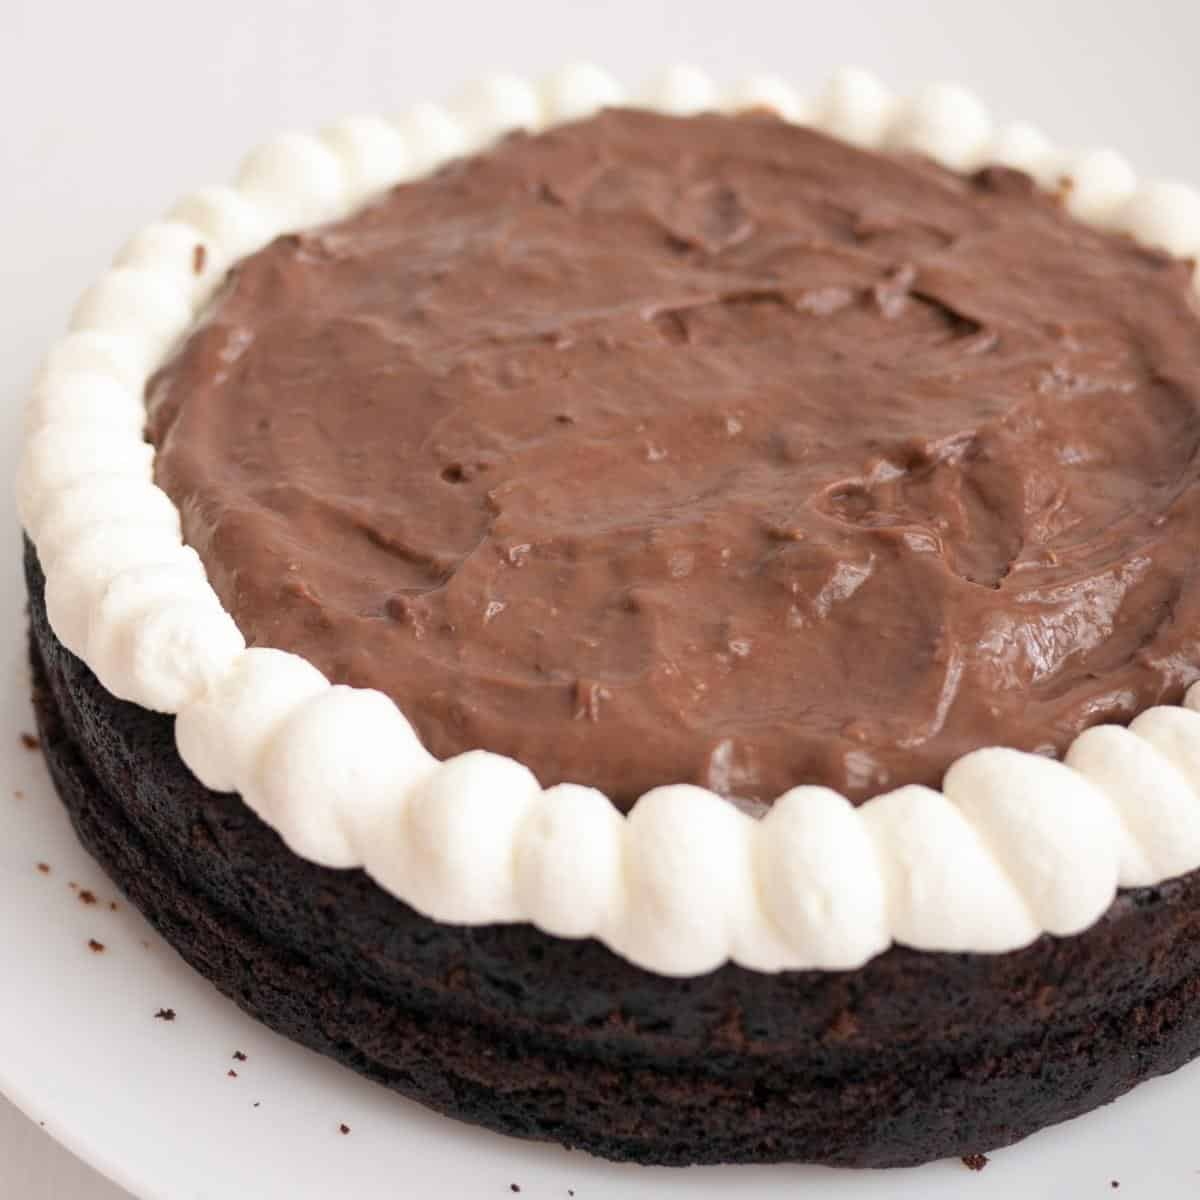 A chocolate layer filled with chocolate mousse.